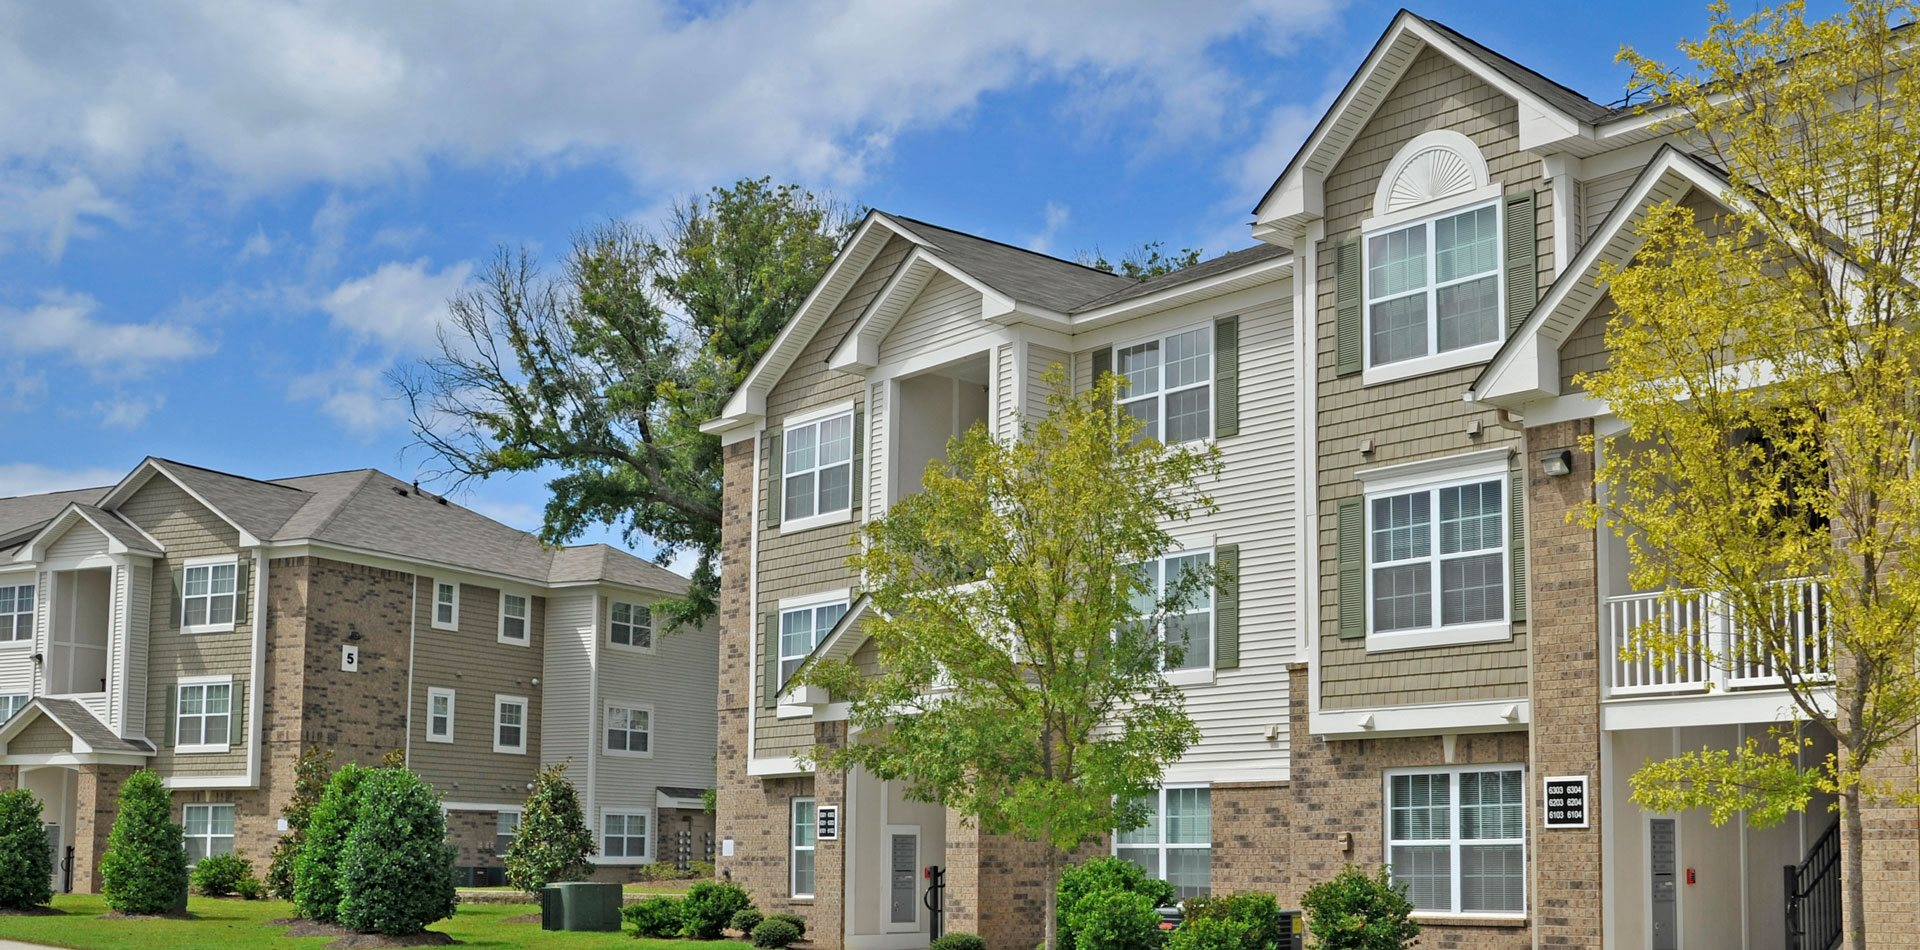 Townhomes for Rent in Columbia, SC | Killian Lakes